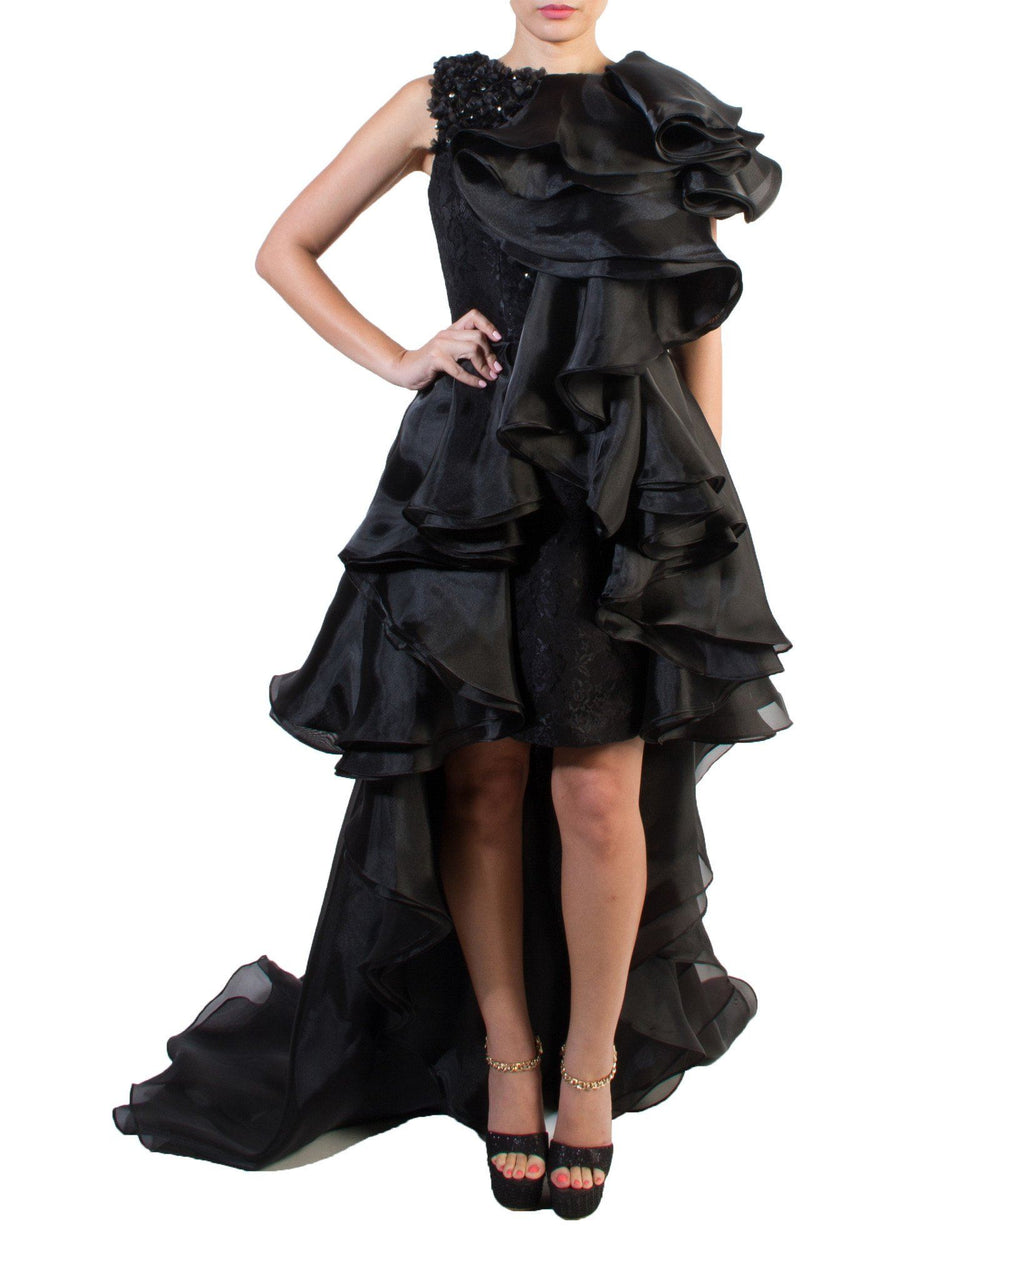 Exaggerated Ruffle Gown - Prive - Covetella Dress Rentals